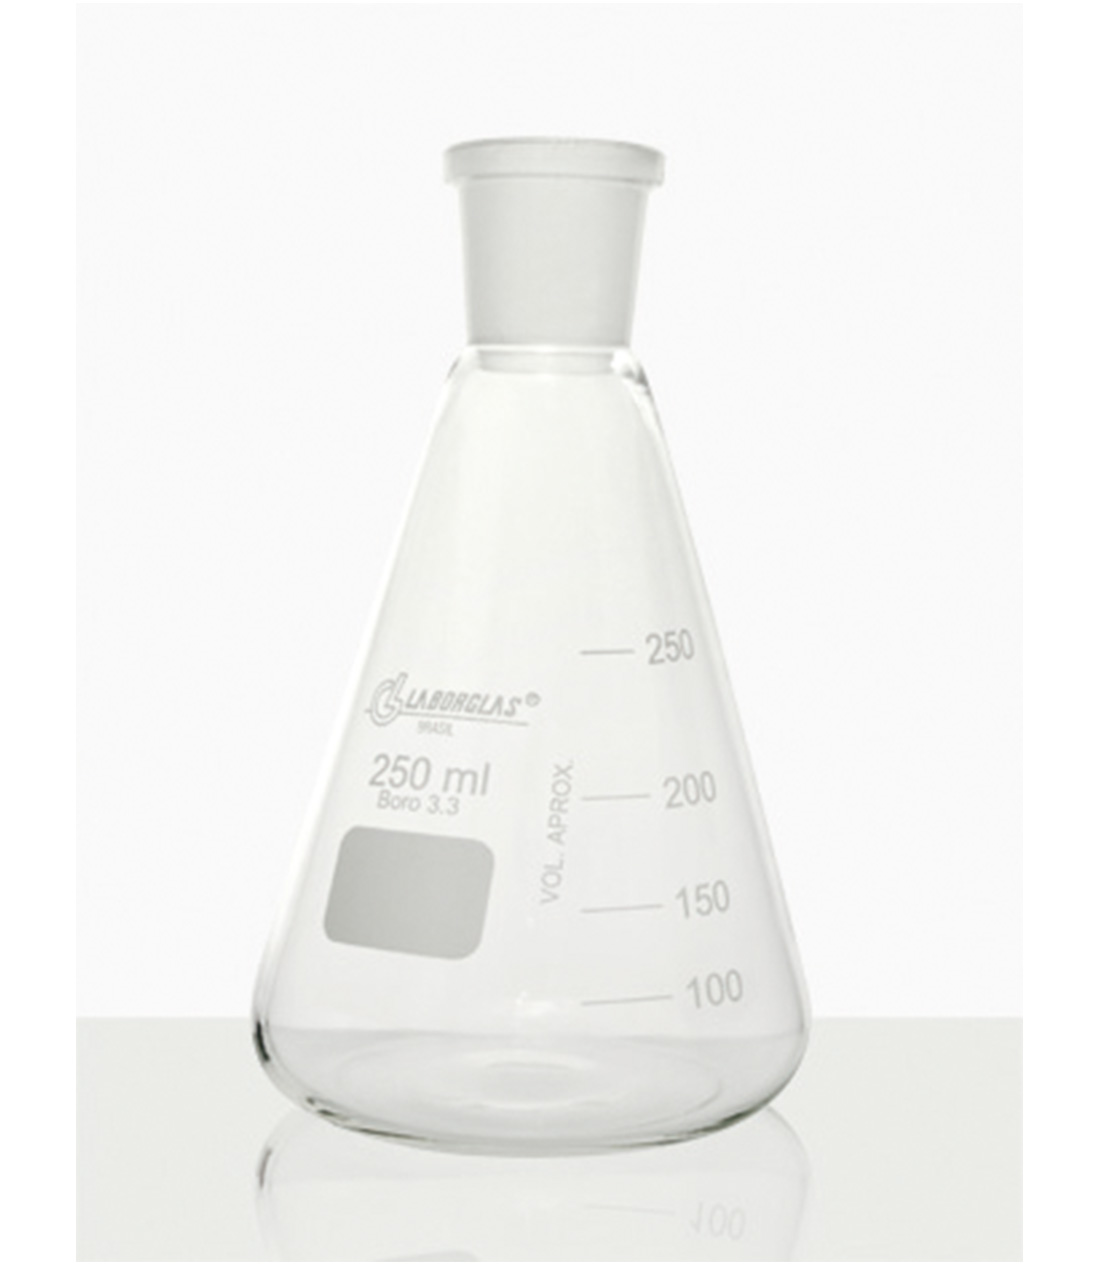 FRASCO ERLENMEYER C/ JUNTA ESM. 2000 ML - Laborglas - Cód. 91216631